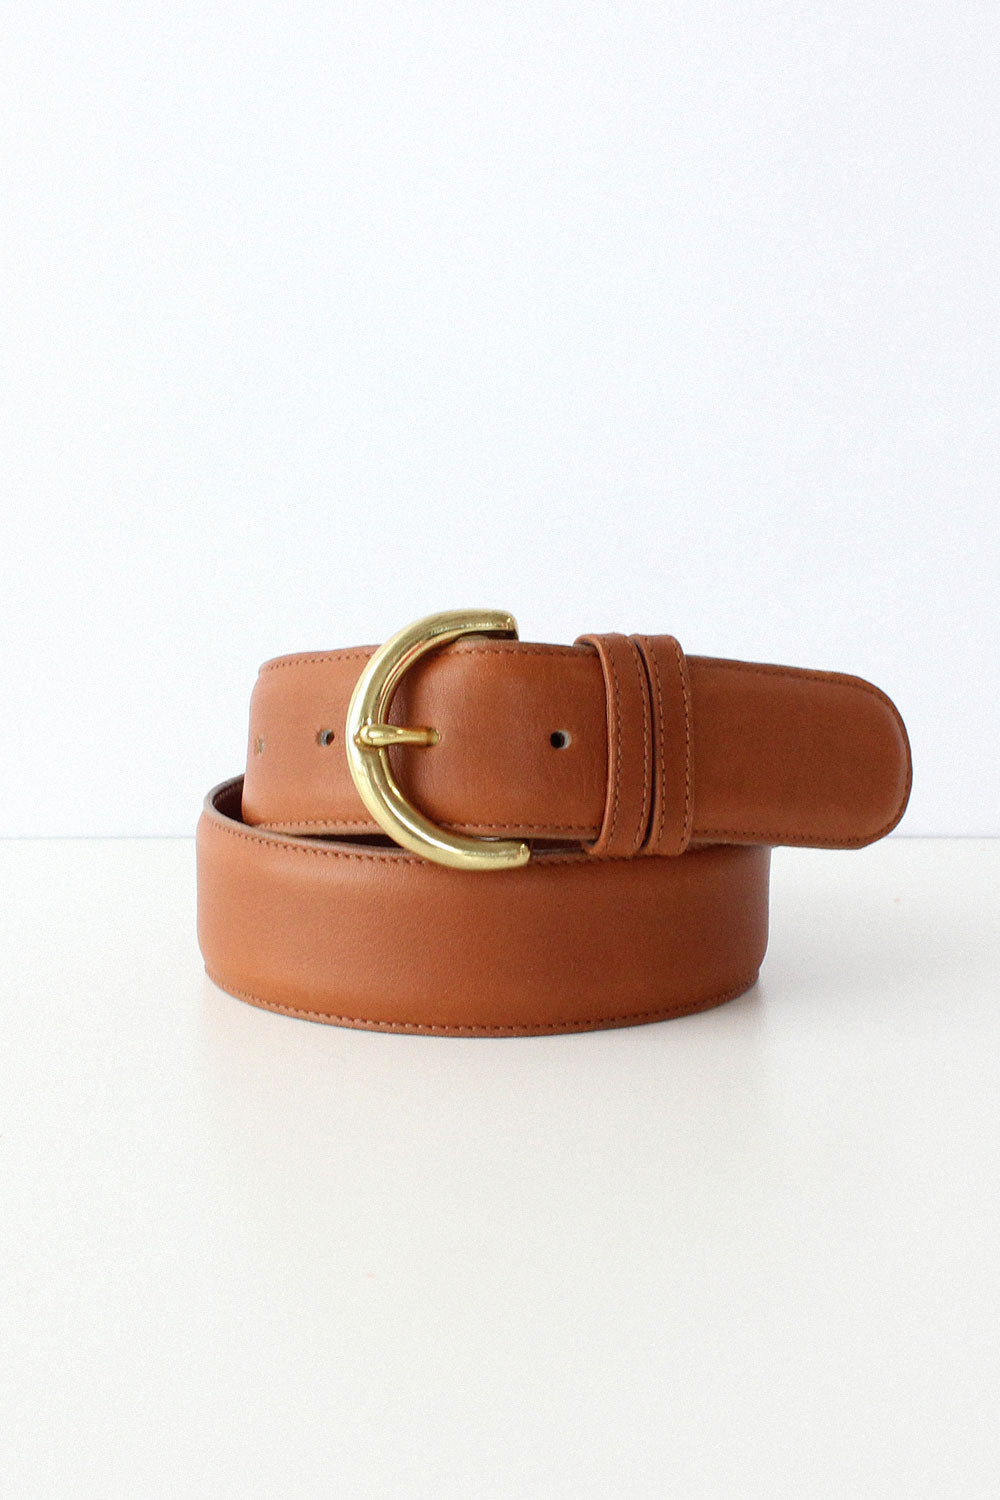 Coach British Tan Belt